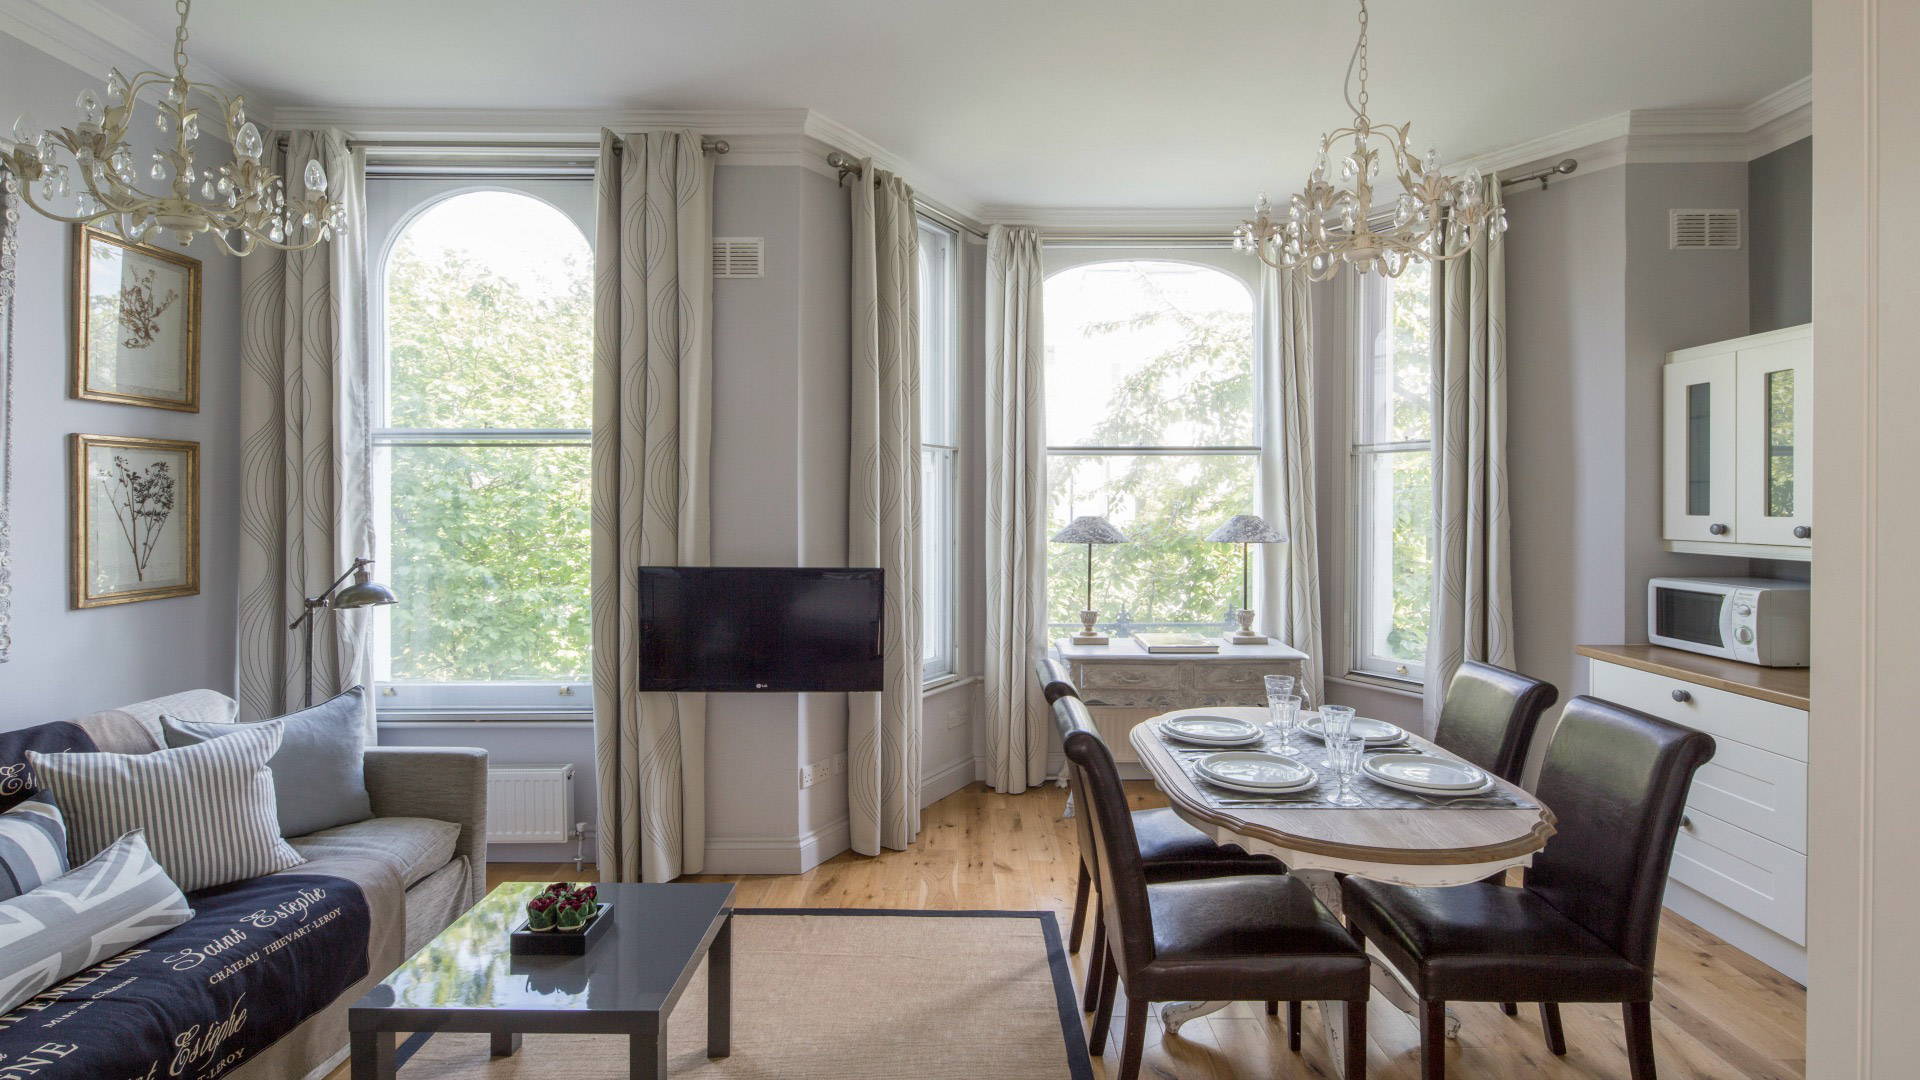 Beautiful 2 bedroom vacation rental in chelsea london - 2 bedroom apartment for rent in chelsea ma ...